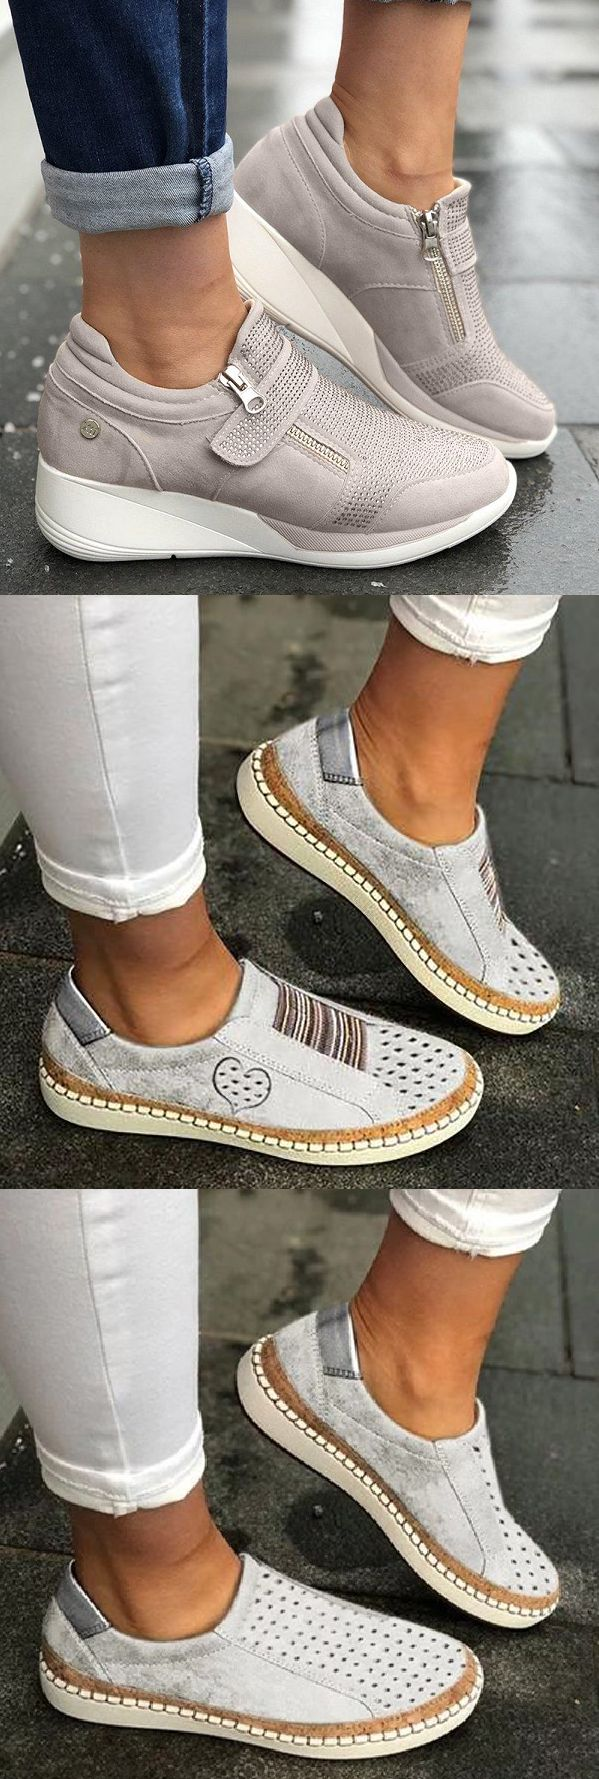 SHOP TODAY>>Up To 70% OFF! Hot Selling Canvas Shoes for You. 50+ Styles for Options.